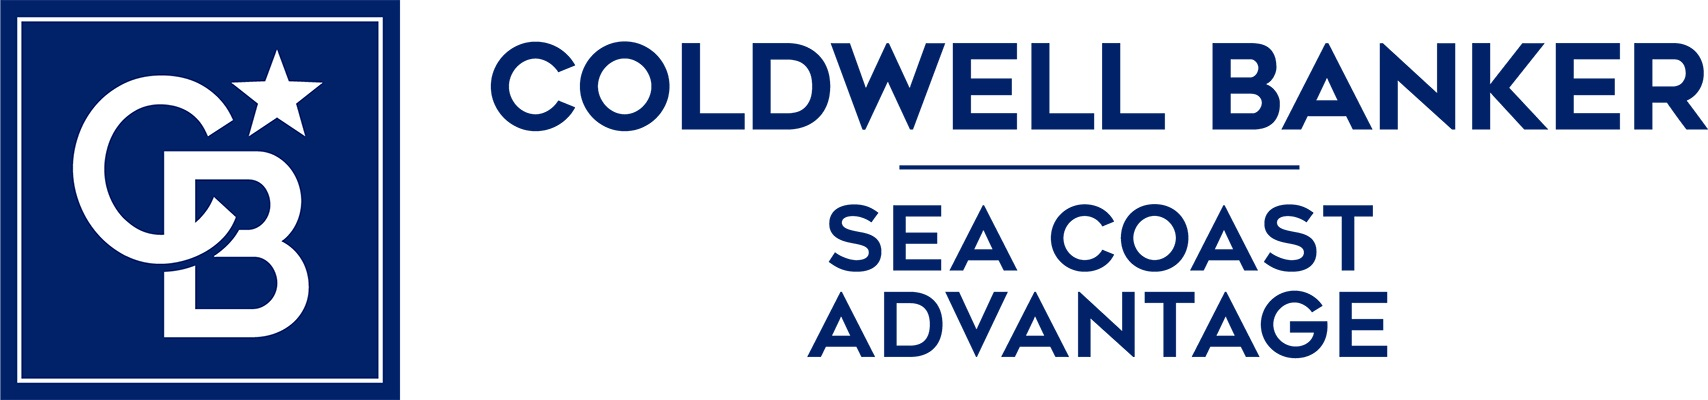 Katarina Epps - Coldwell Banker Sea Coast Advantage Realty Logo